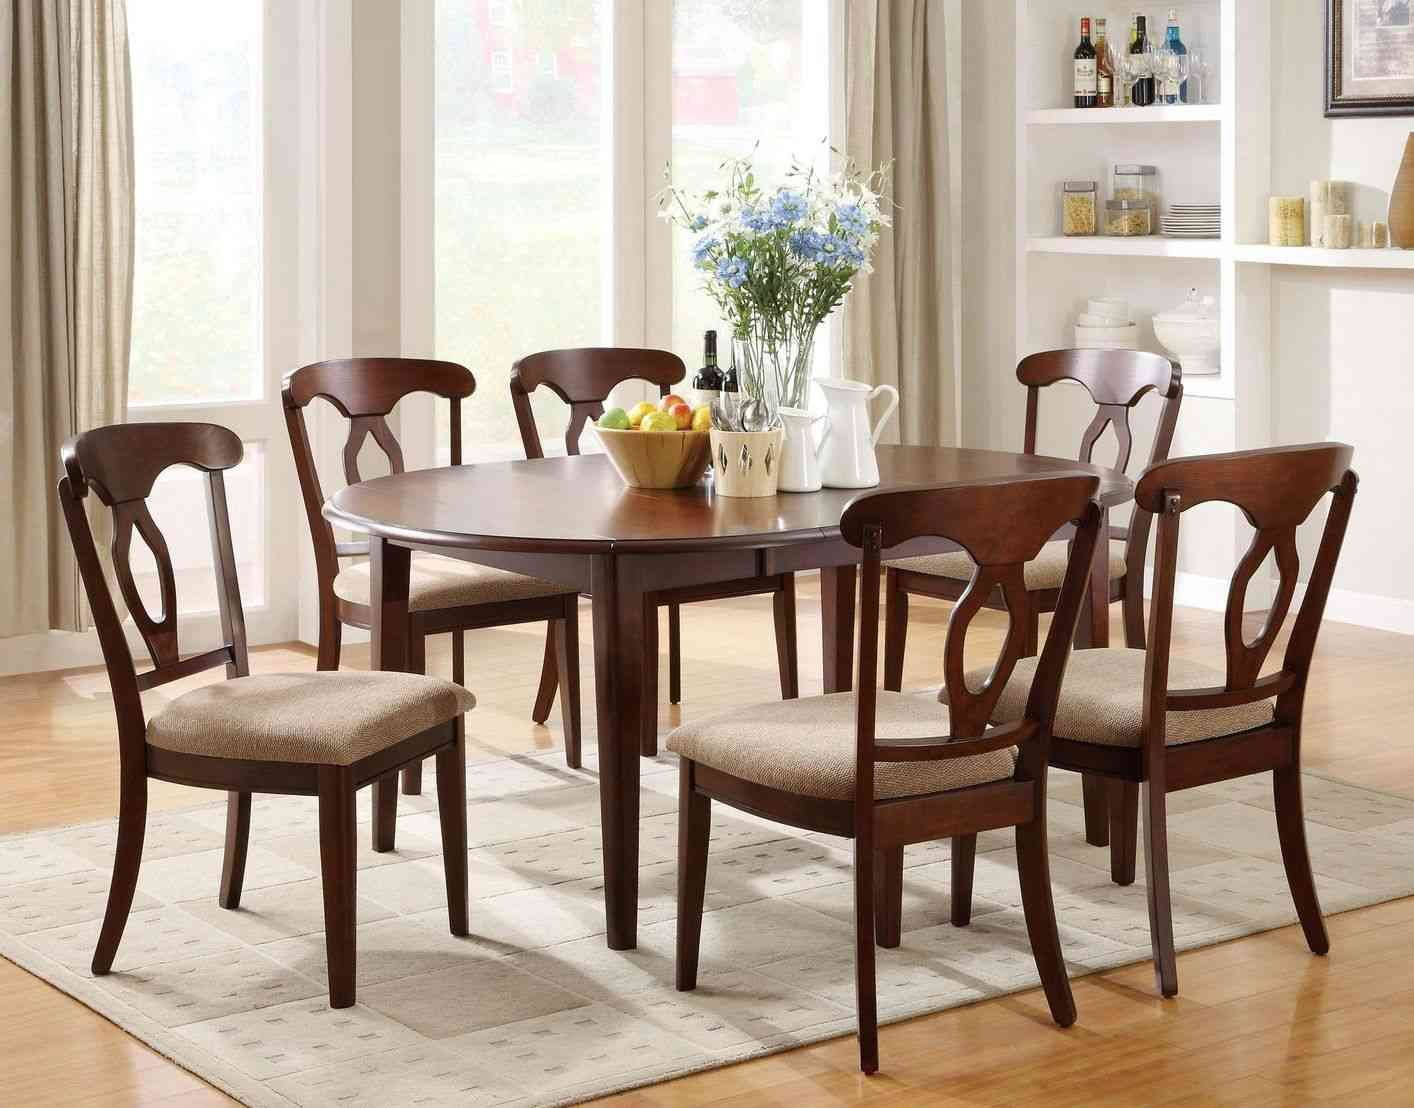 Beautiful Dining Table Chairs Walmart 1414x1108